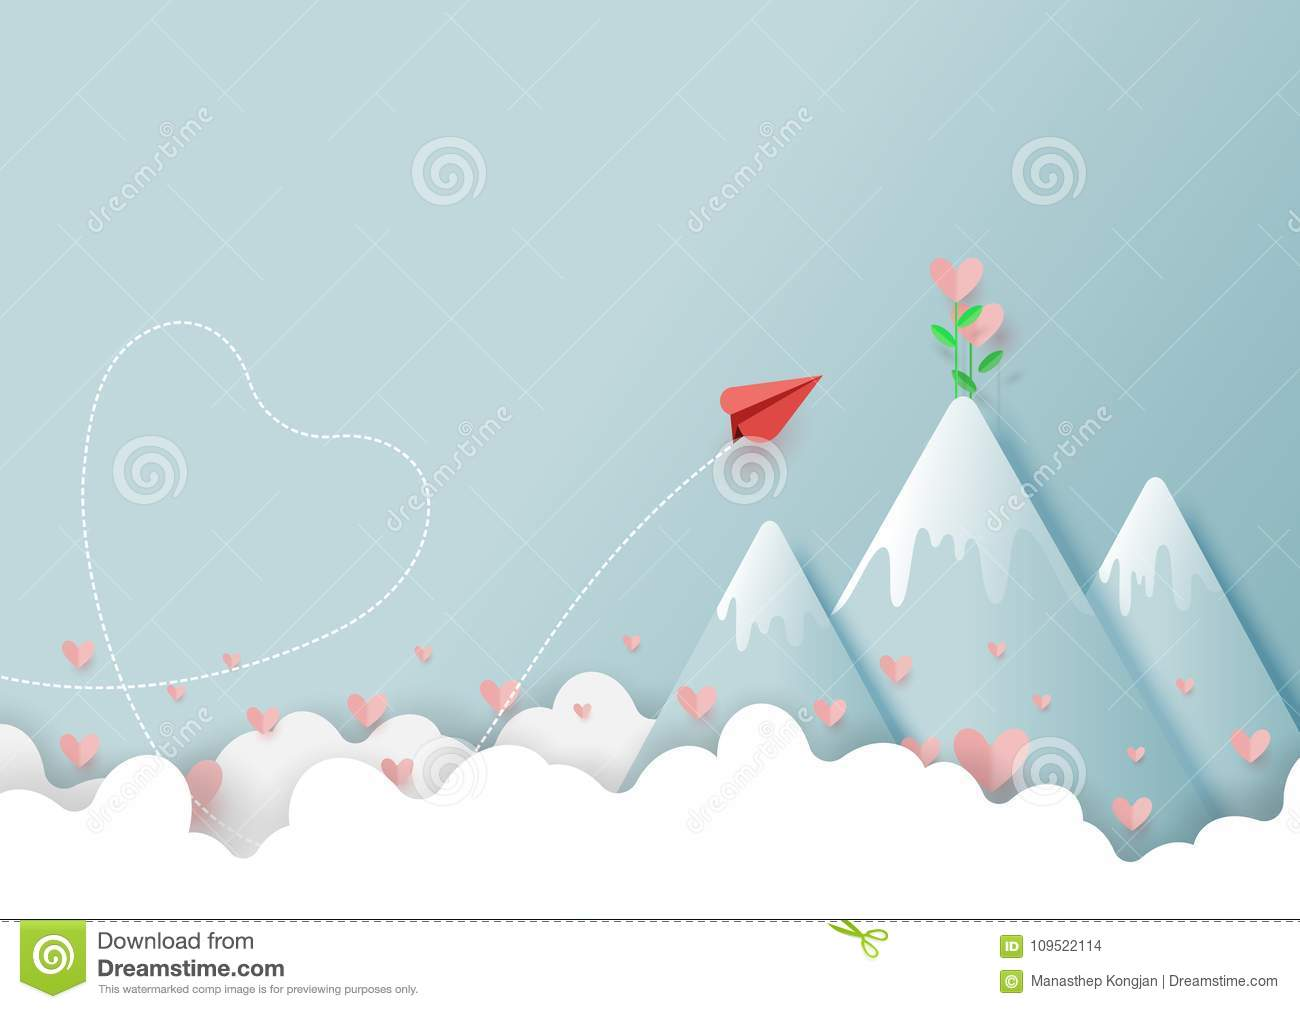 02.Paper airplane flying to love plant on top of mountain